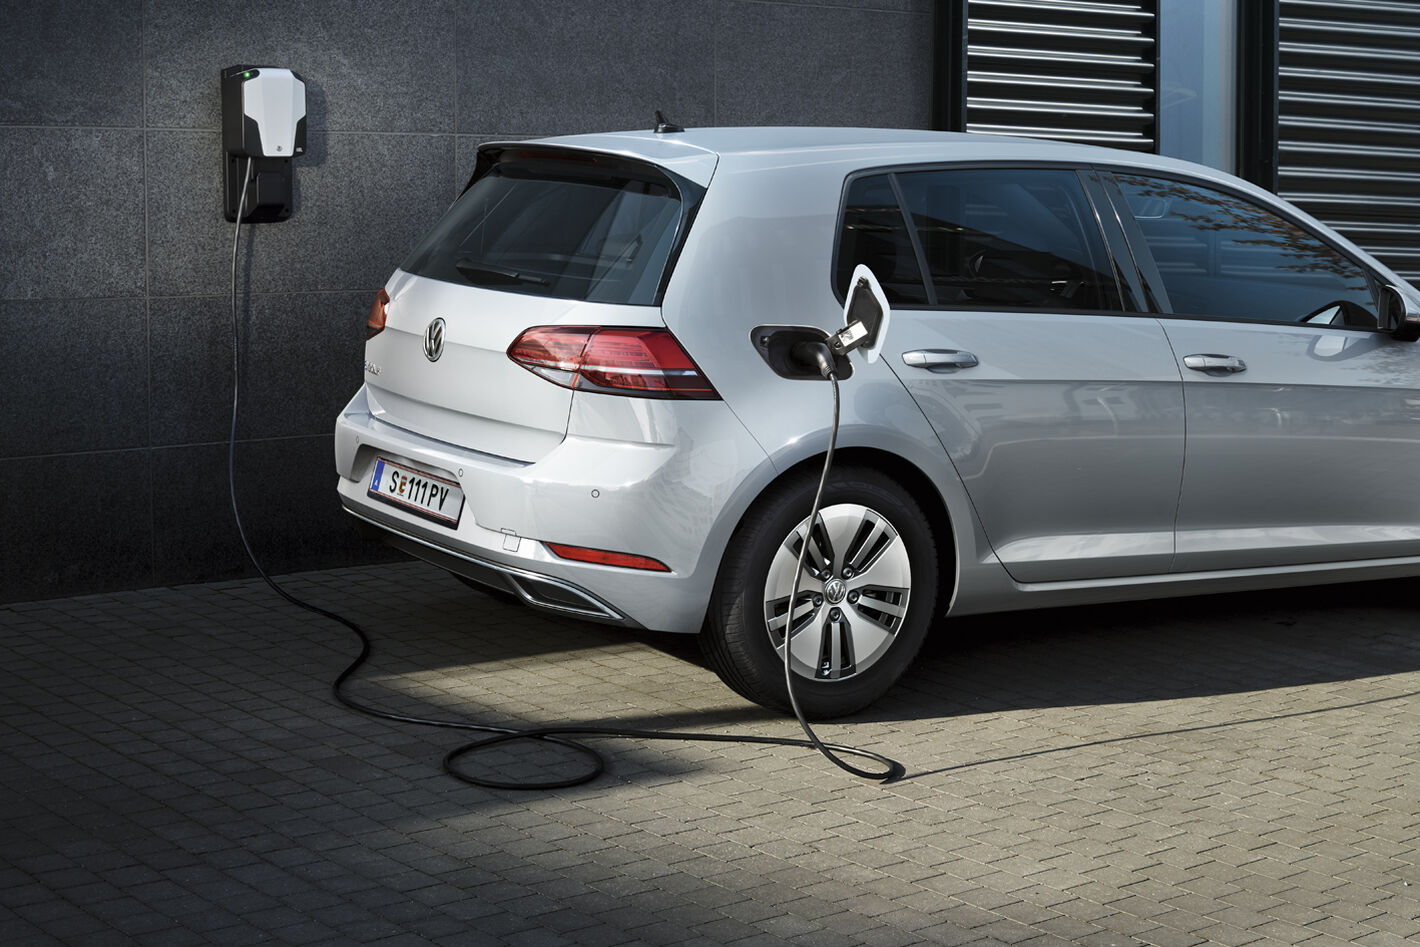 vw volkswagen e-golf automobil electric profil